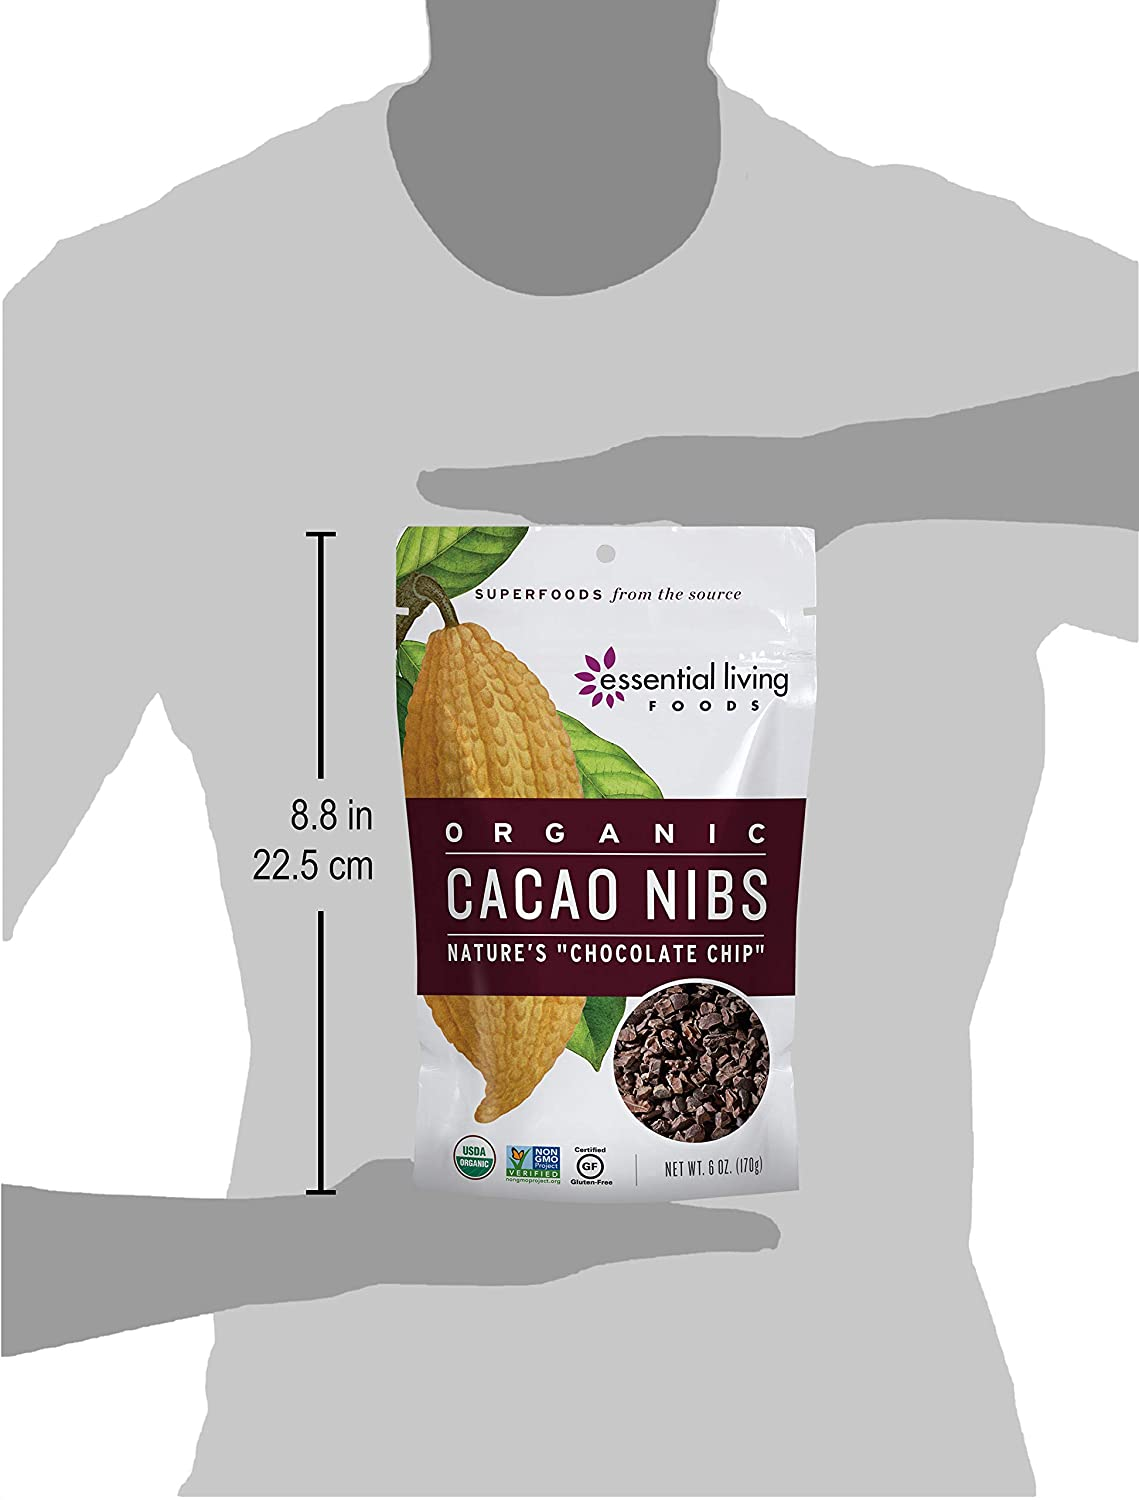 Essential Living Foods Organic Cacao Nibs, Healthy Natural Unsweetened Chocolate Chips for Trail Mixes, Vegan, Superfood Protein Nutrients, Non-GMO, ...